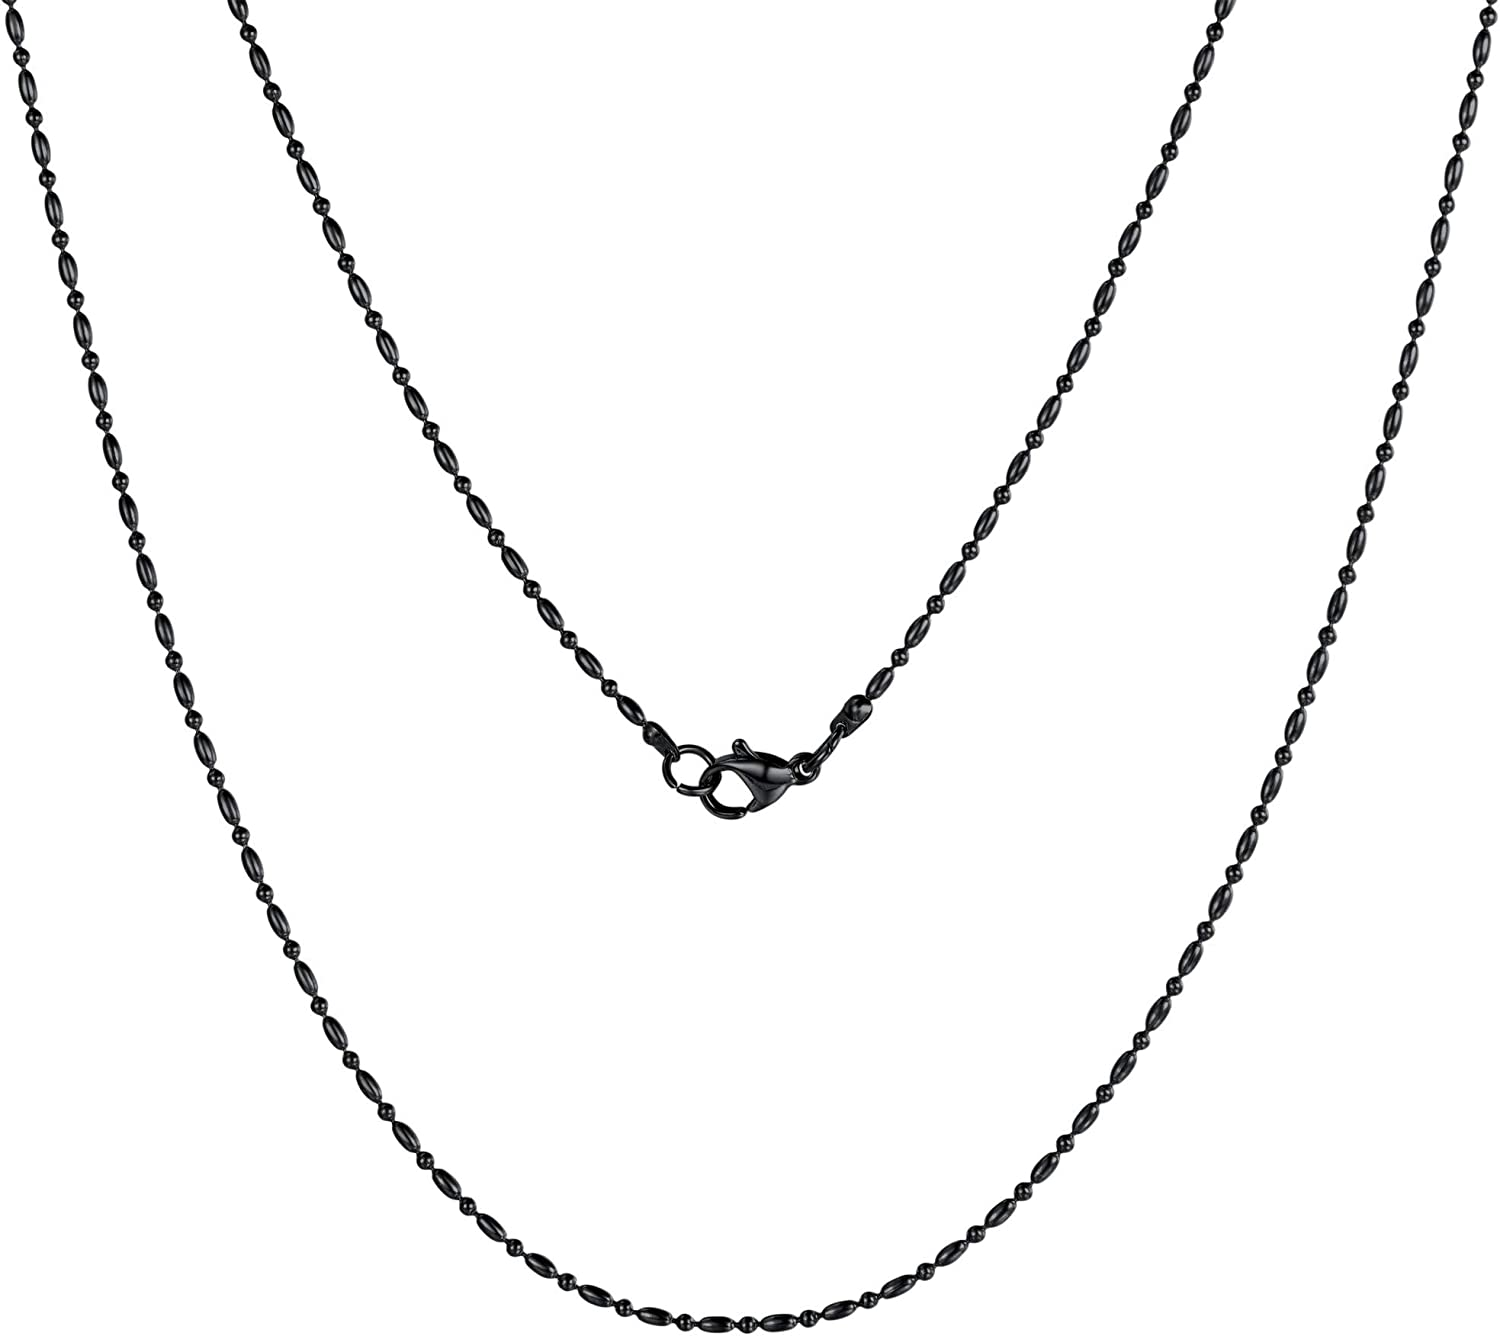 """ChainsPro Women Slim Chain, Replacement Necklace, 18-30"""" Length, 18K Gold Plated/925 Sterling Silver Send Gift Box"""